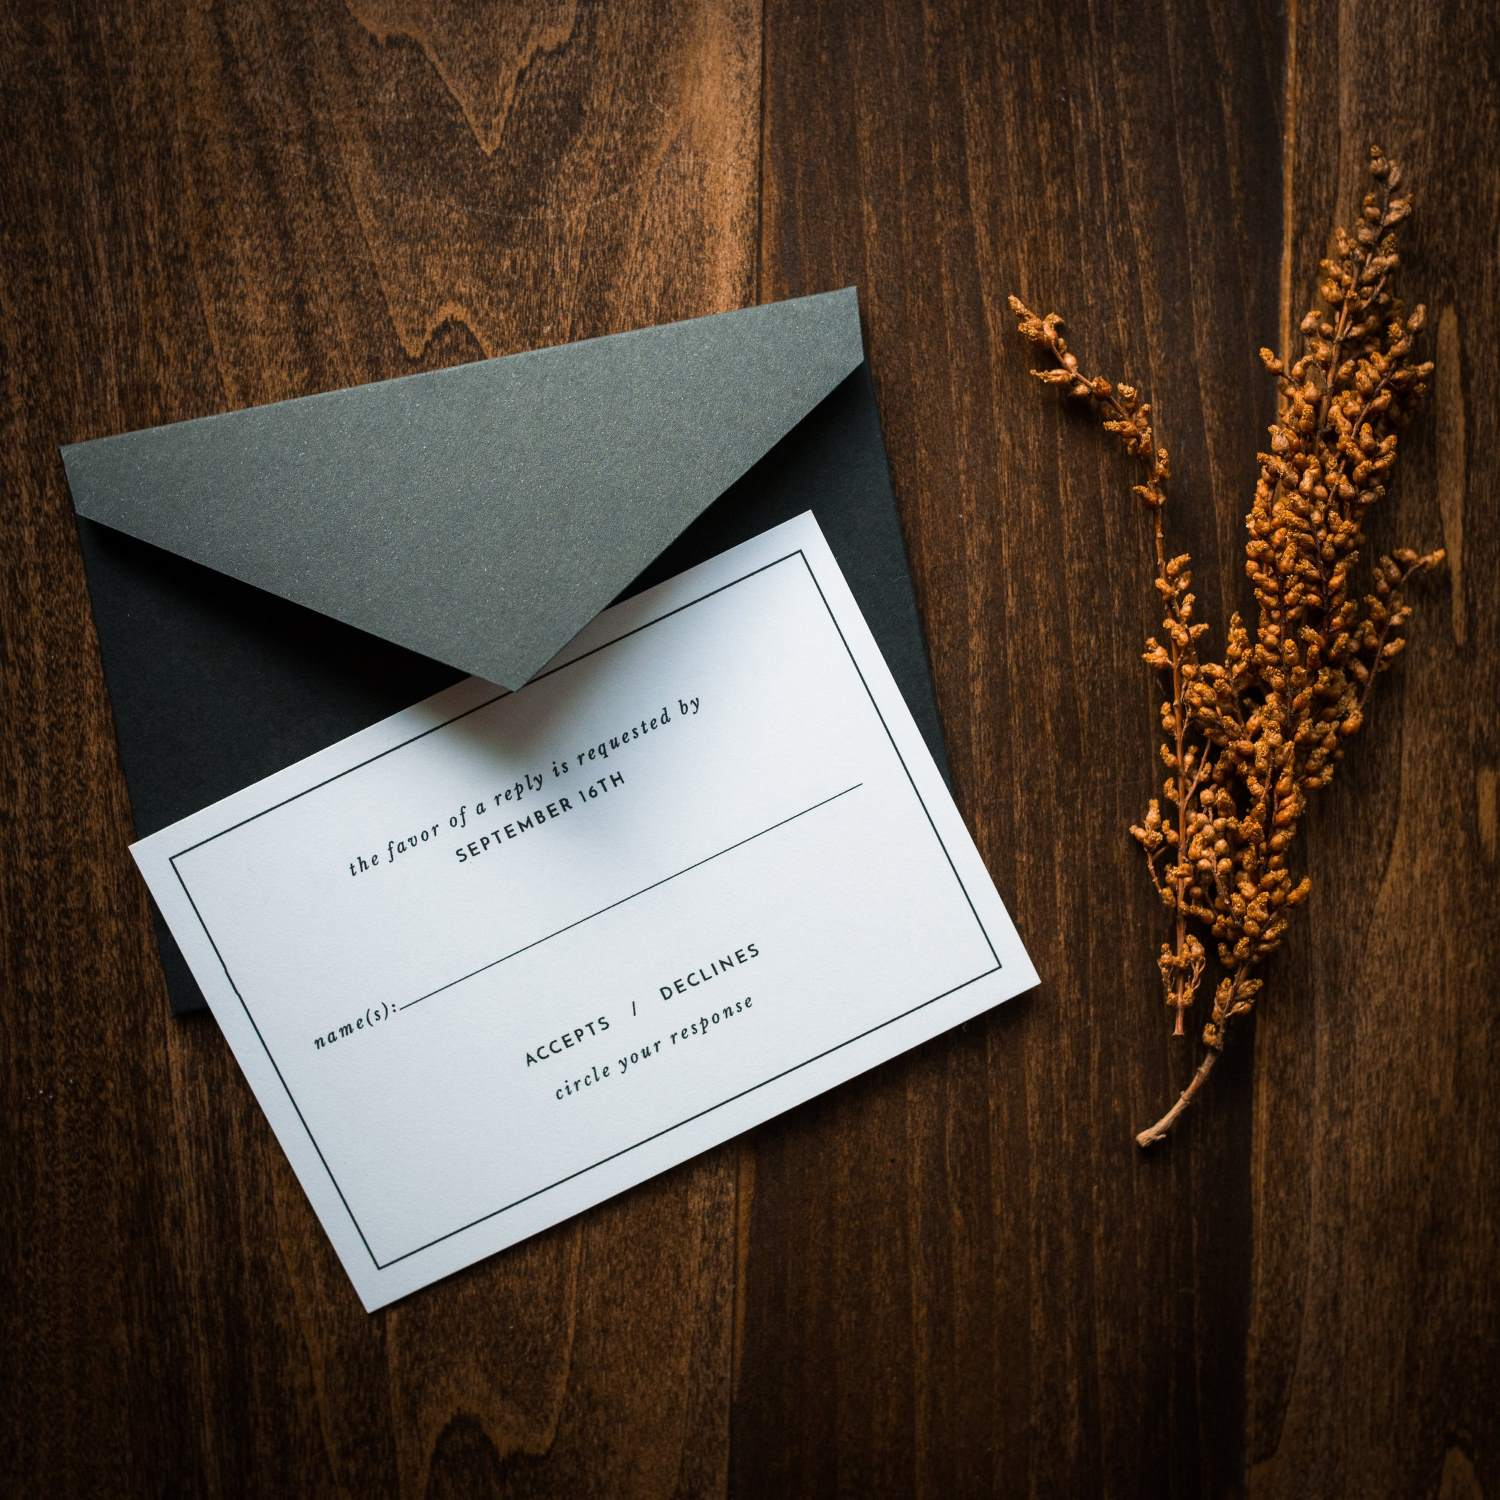 MODERN ORIGAMI WEDDING INVITATIONS PHOTO 5